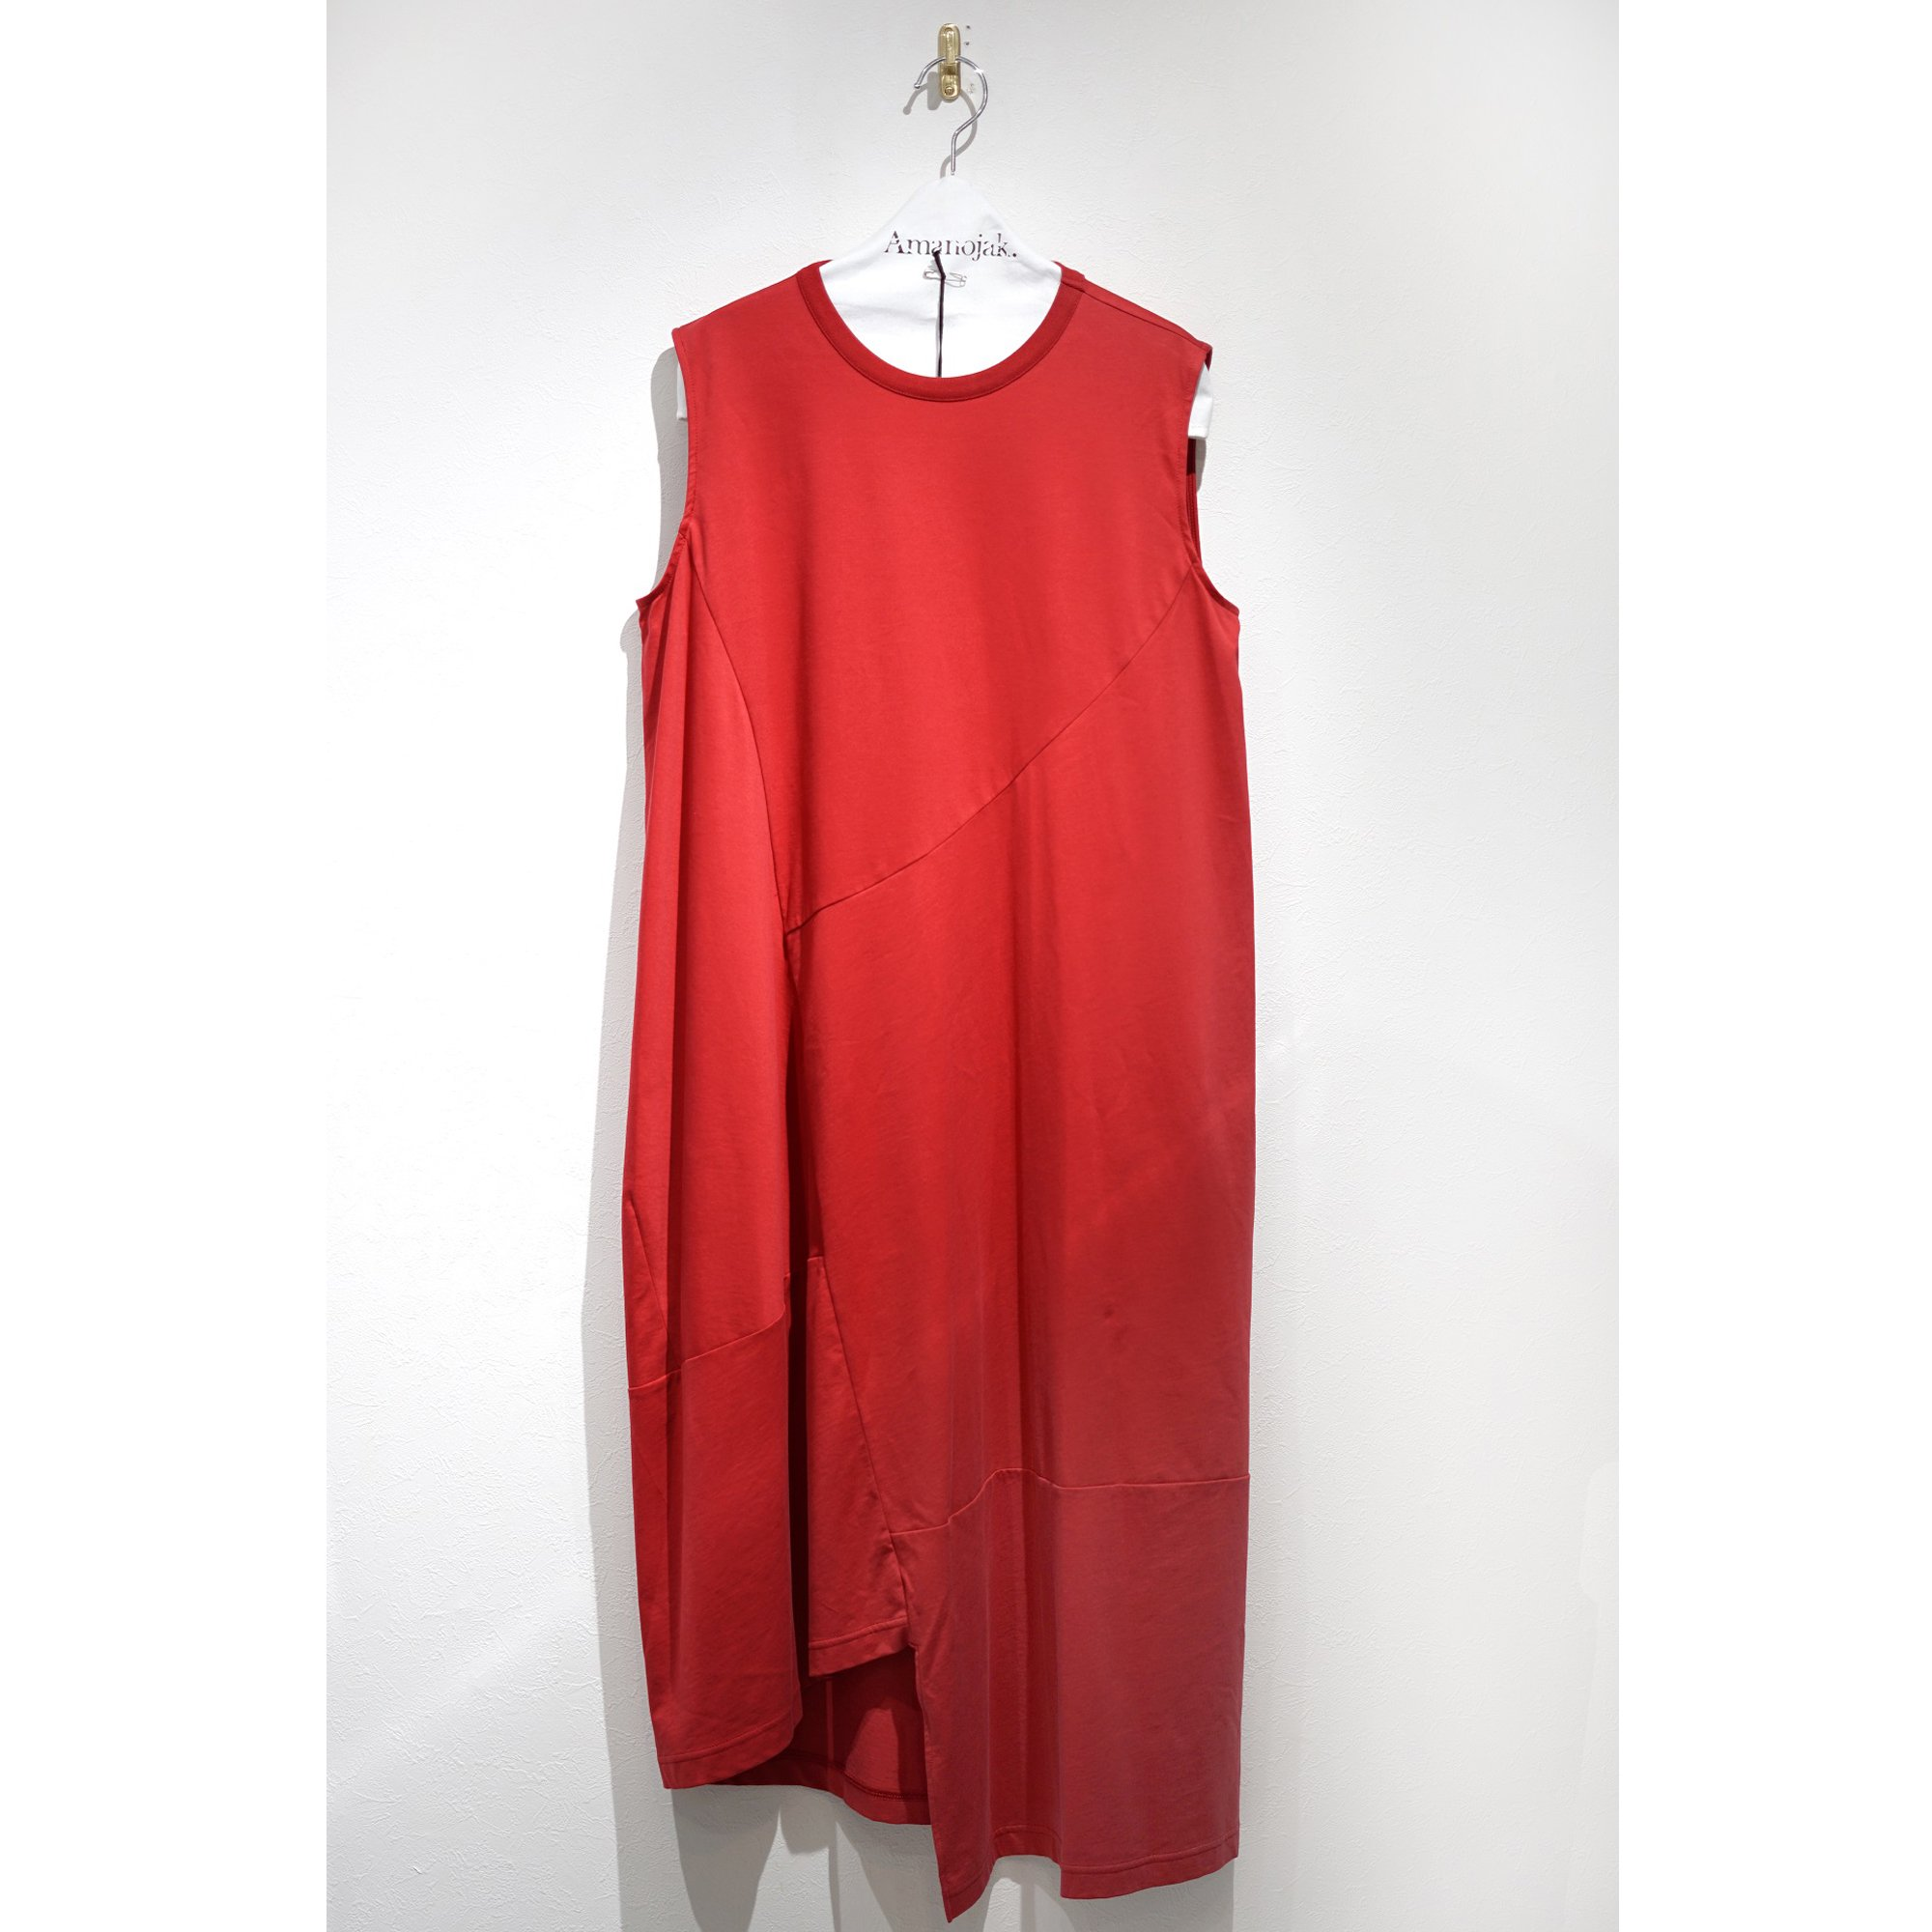 08sircus-CROSS JERSEY SWITCHING DRESS RED